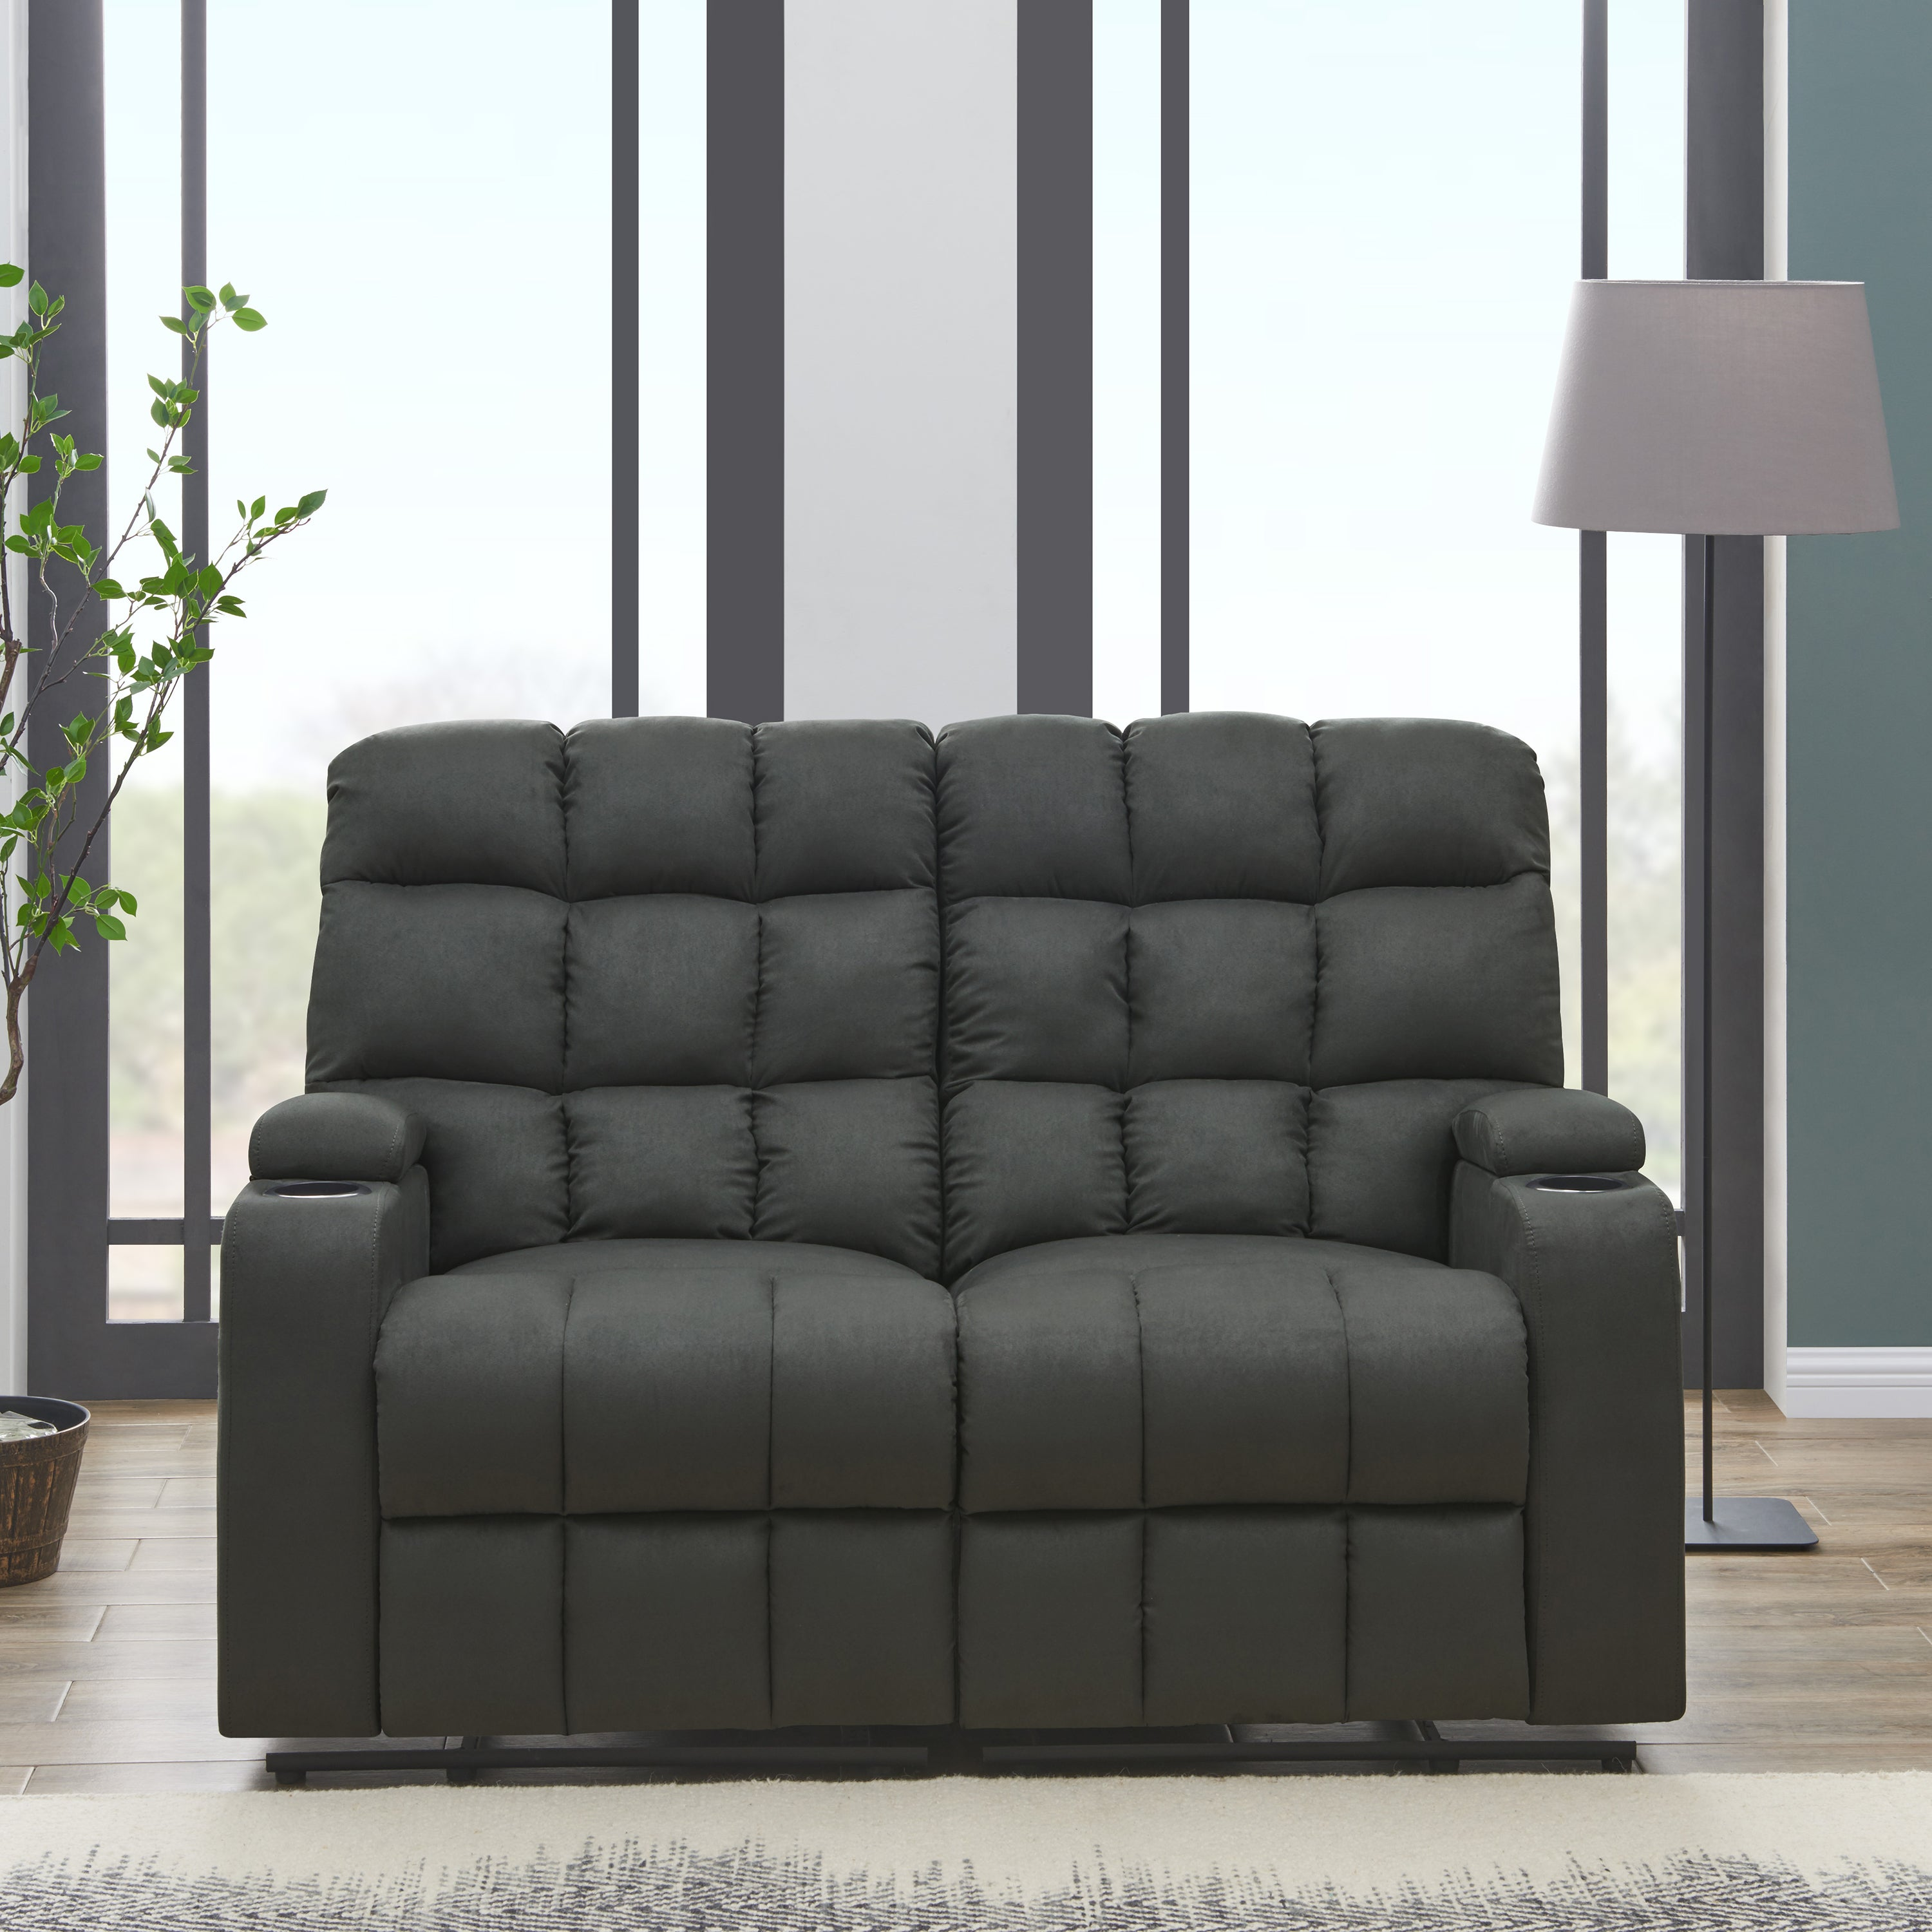 product today overstock alder microfiber seat storage sale loveseat pisgah shipping grey free reclining garden clay home wall